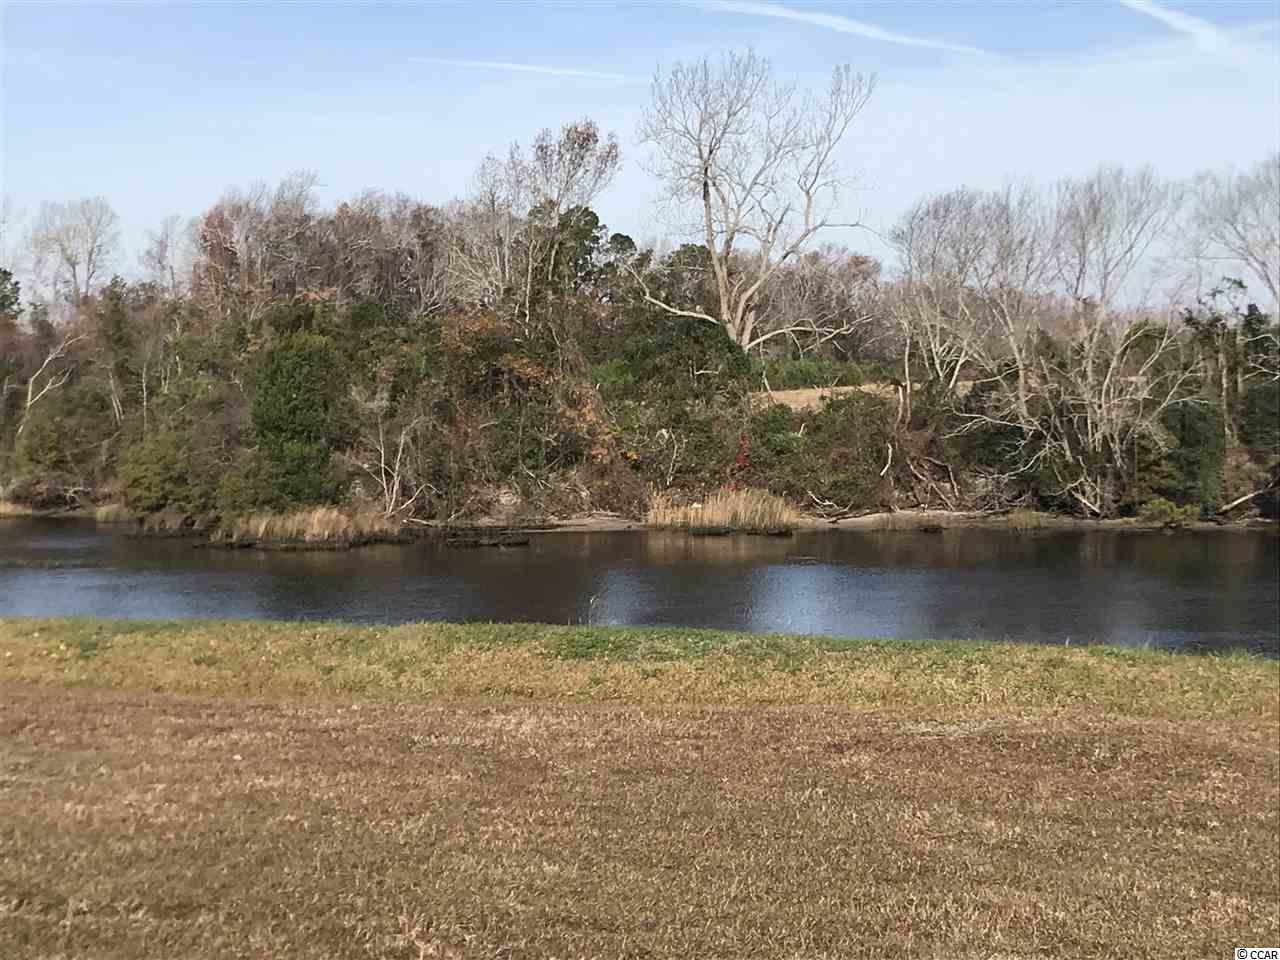 You have been waiting to build your dream house on the waterway.  Well, here is your chance for a direct waterway front lot in a premier community in North Myrtle Beach, SC.  Low HOA fees, waterway access, and one of a few direct Intracoastal Waterway lots remaining in this neighborhood.  Hurry before this one is gone too!